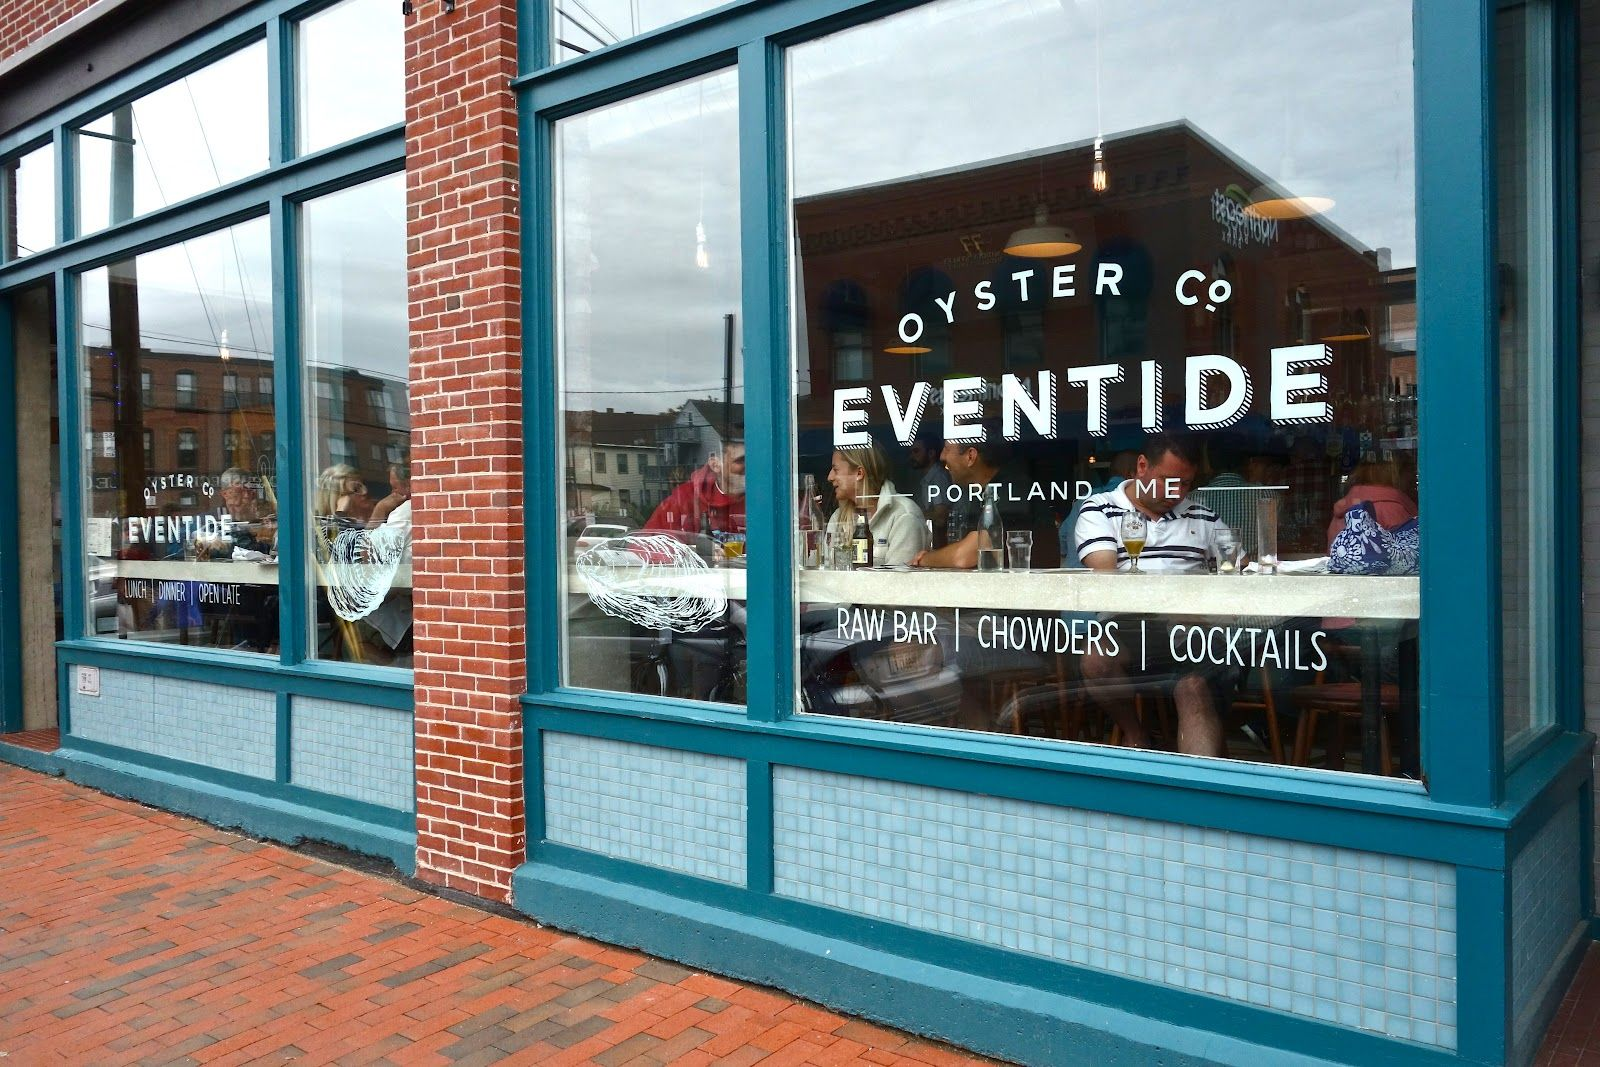 Eventide Oyster Co Portland Me Best Oysters Oysters Portland